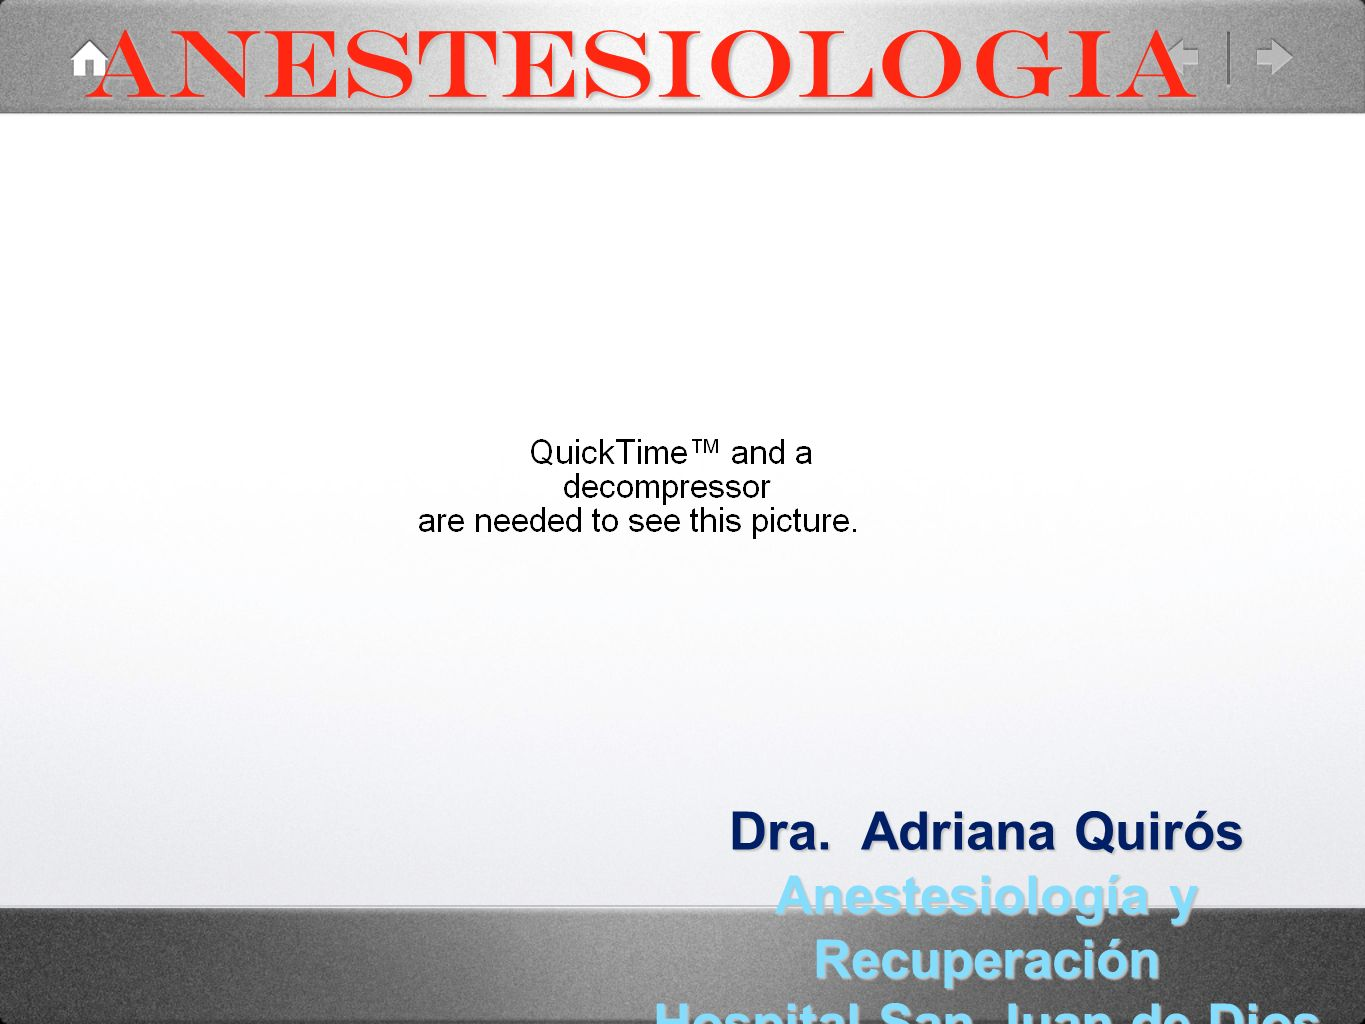 Material ingerido Periodo mínimo de ayuno (horas) Líquidos claros2 Leche materna4 Fórmula infantil6 Leche no humana6 Comida ligera6-8 Report by the American Society of Anesthesiologist Task Force on Preoperative Fasting.